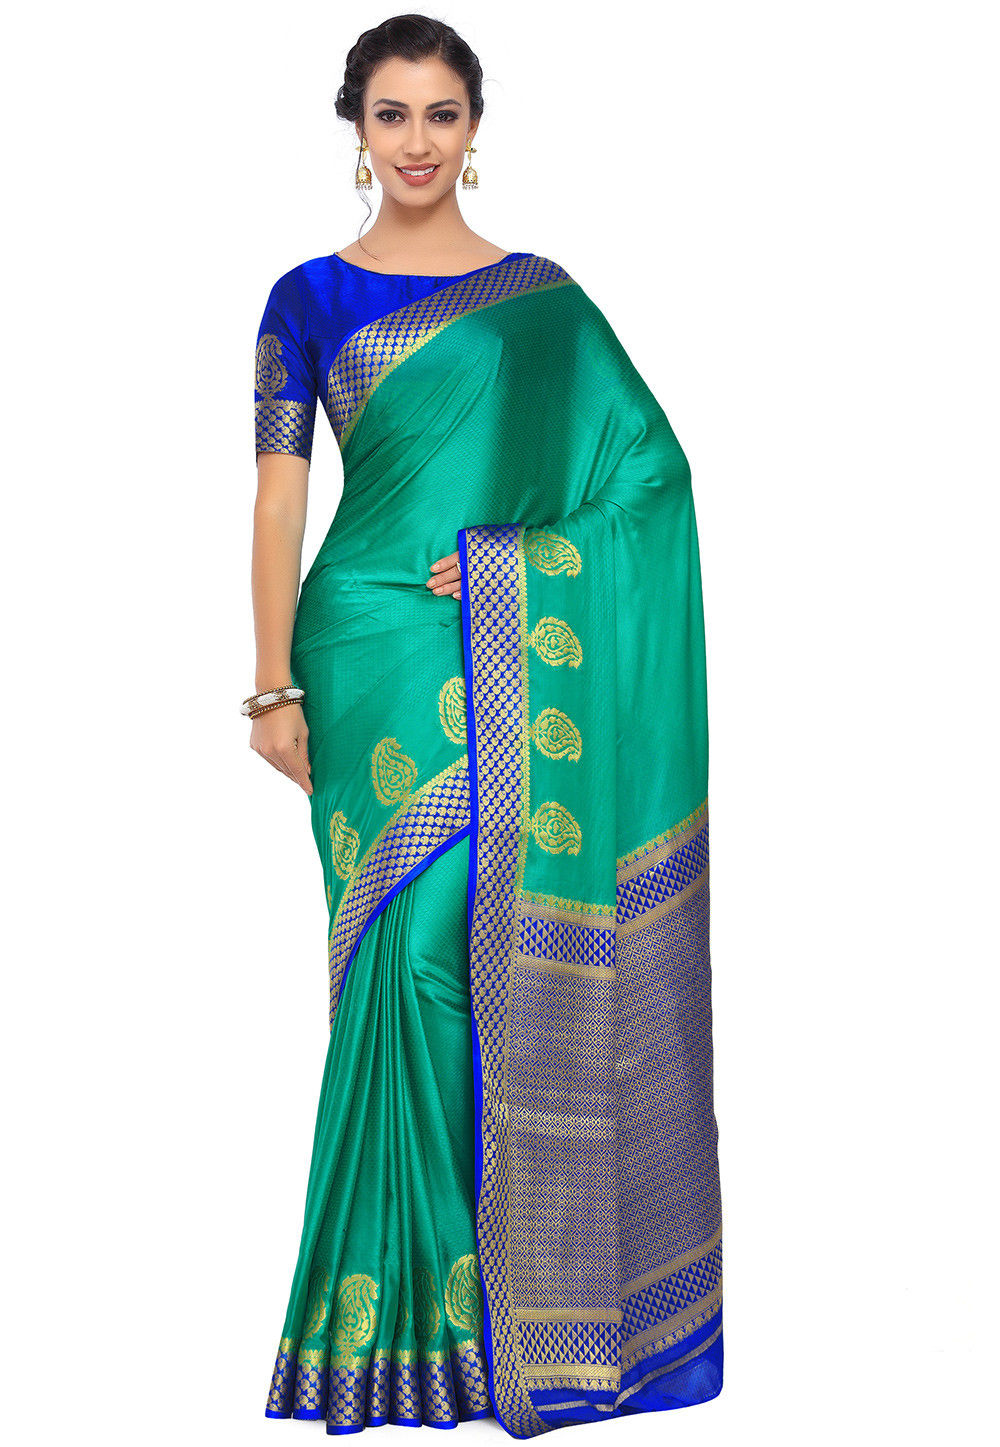 Woven Crepe Saree in Teal Green